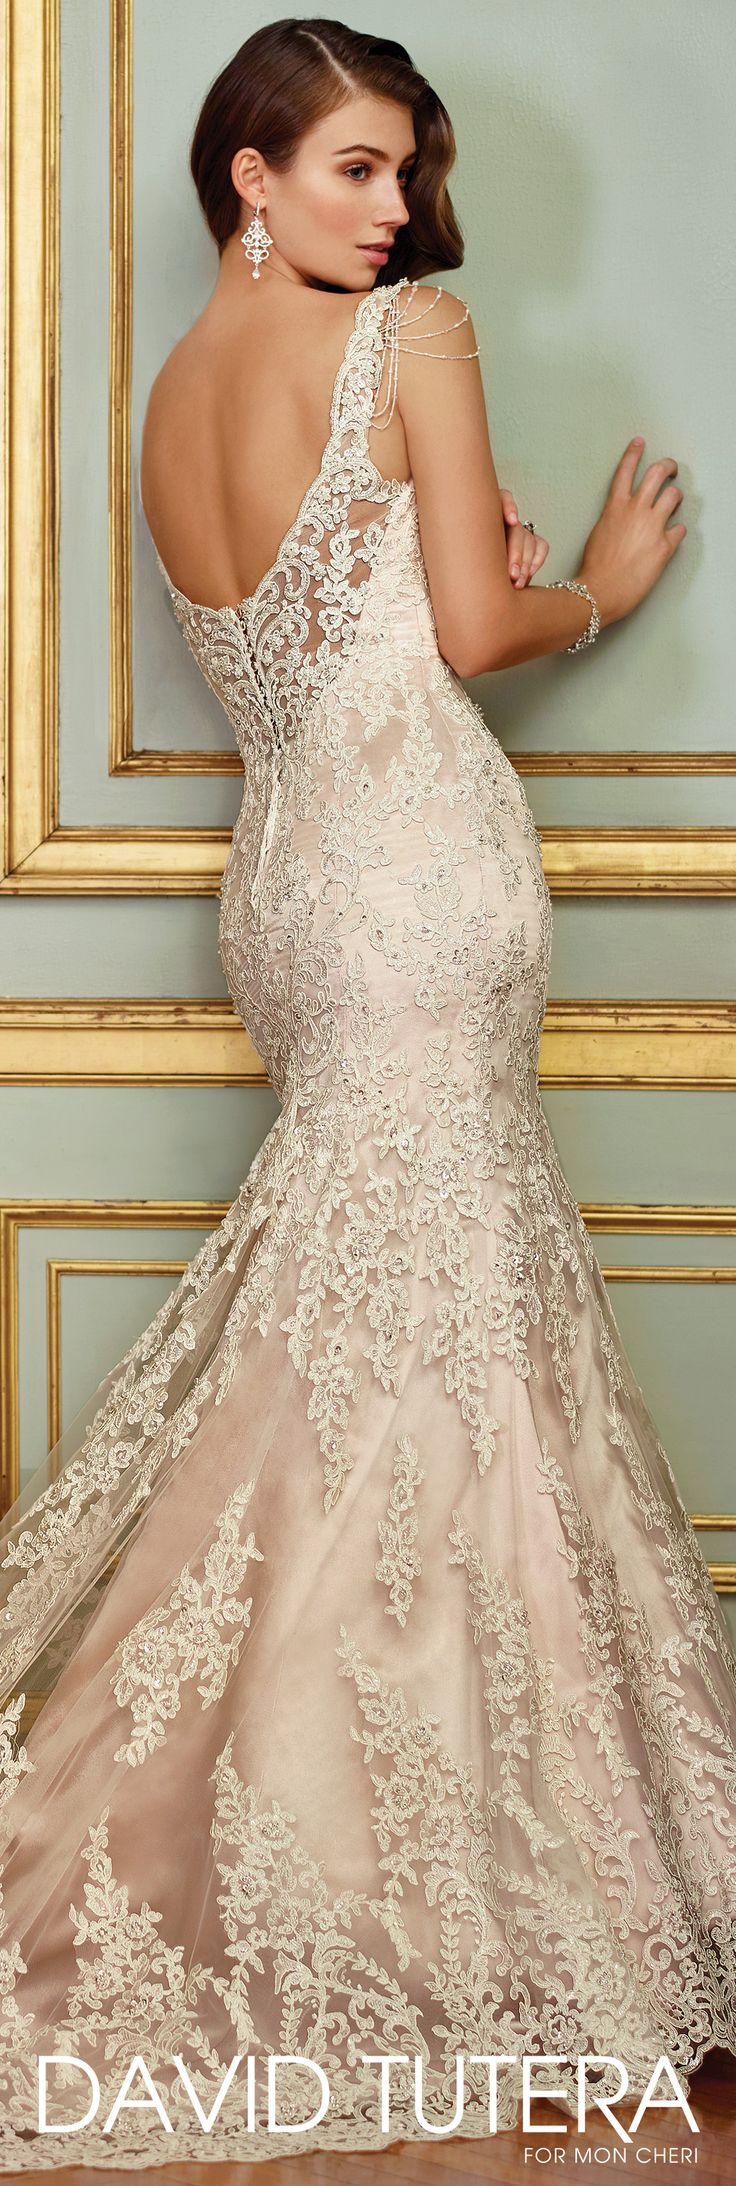 David Tutera for Mon Cheri Spring 2017 Collection - Style No. 117288 Ophira - sleeveless lace trumpet wedding dress with low scooped illusion back